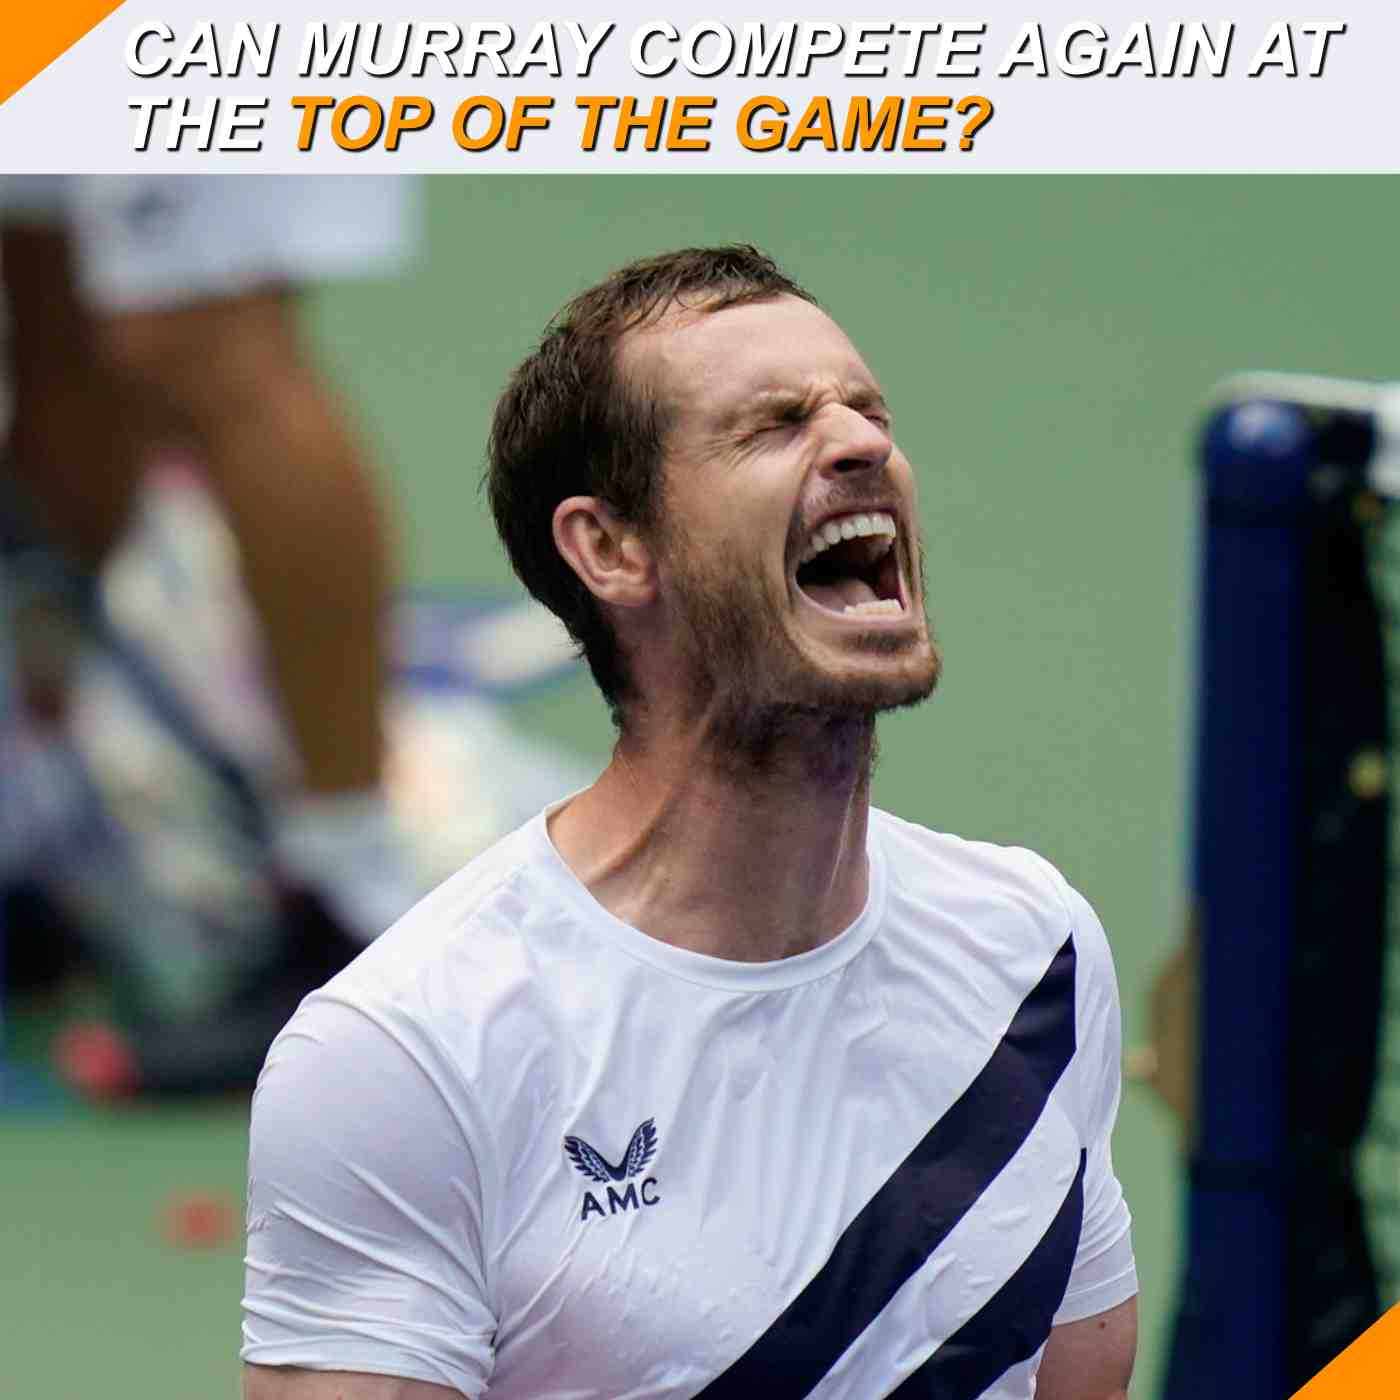 Can Andy Murray mack a comeback?